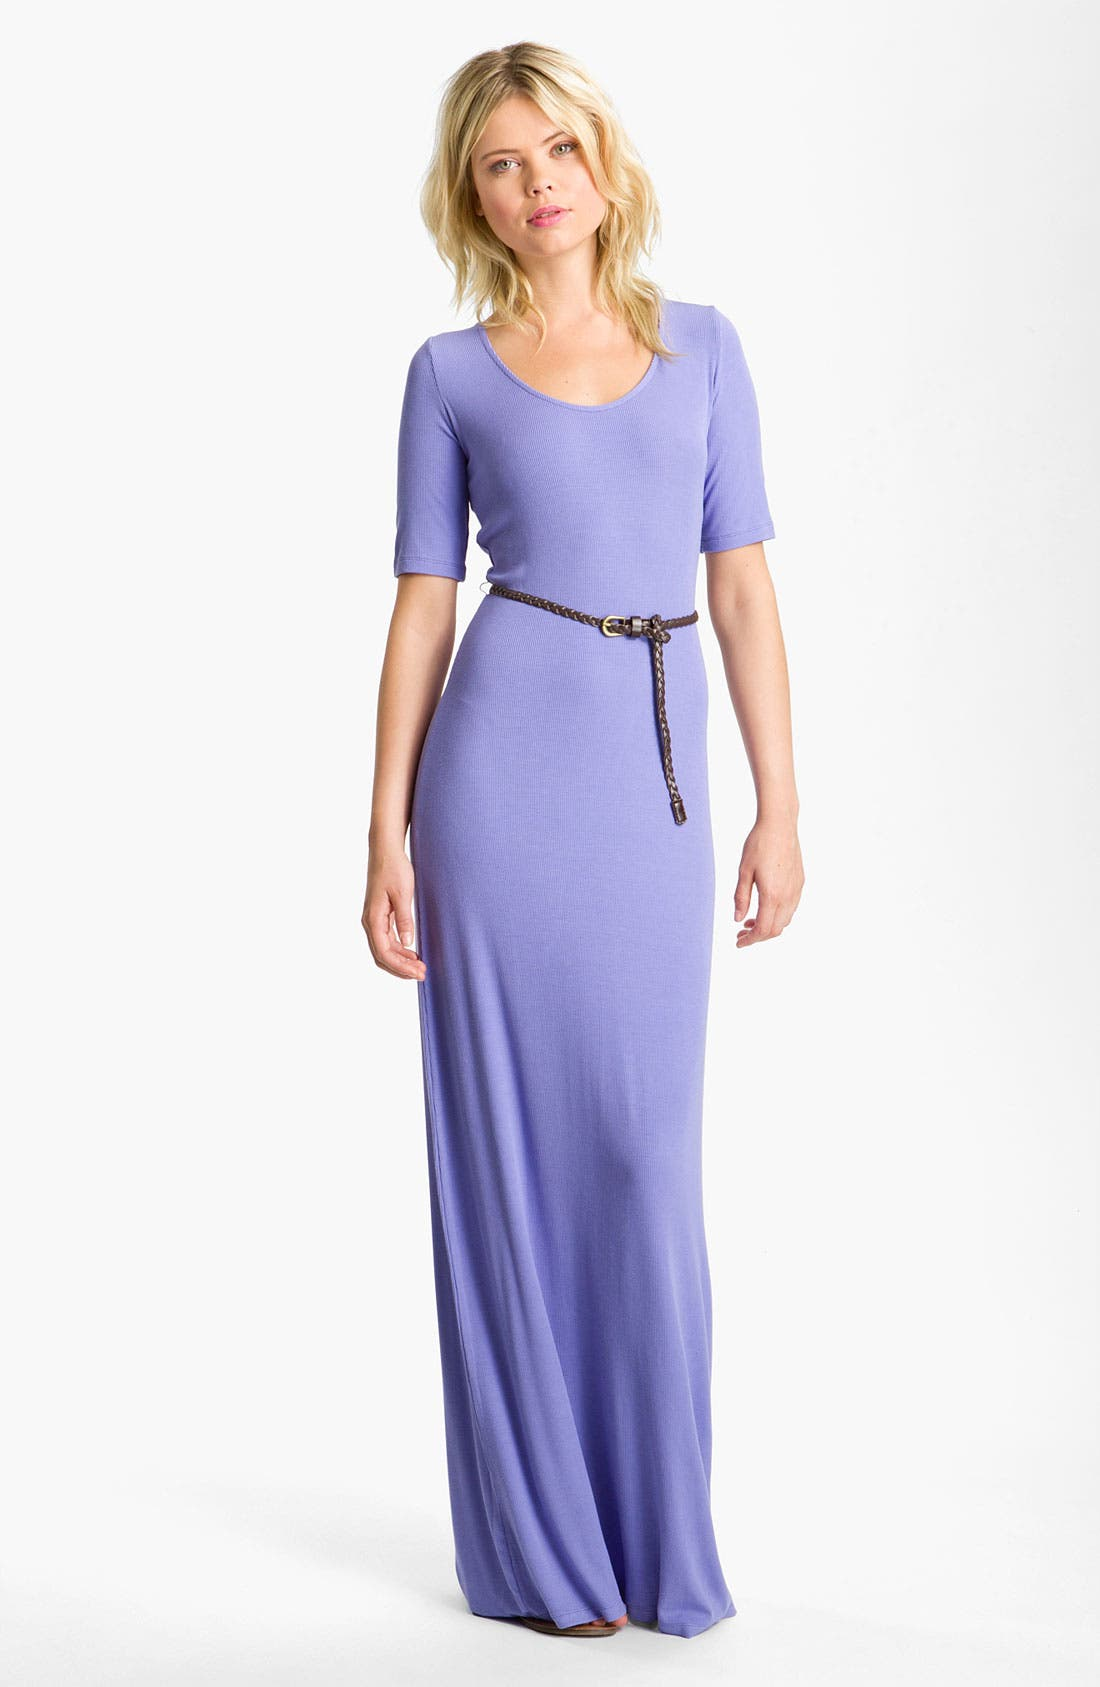 Main Image - Felicity & Coco Belted Jersey Maxi Dress (Nordstrom Exclusive)